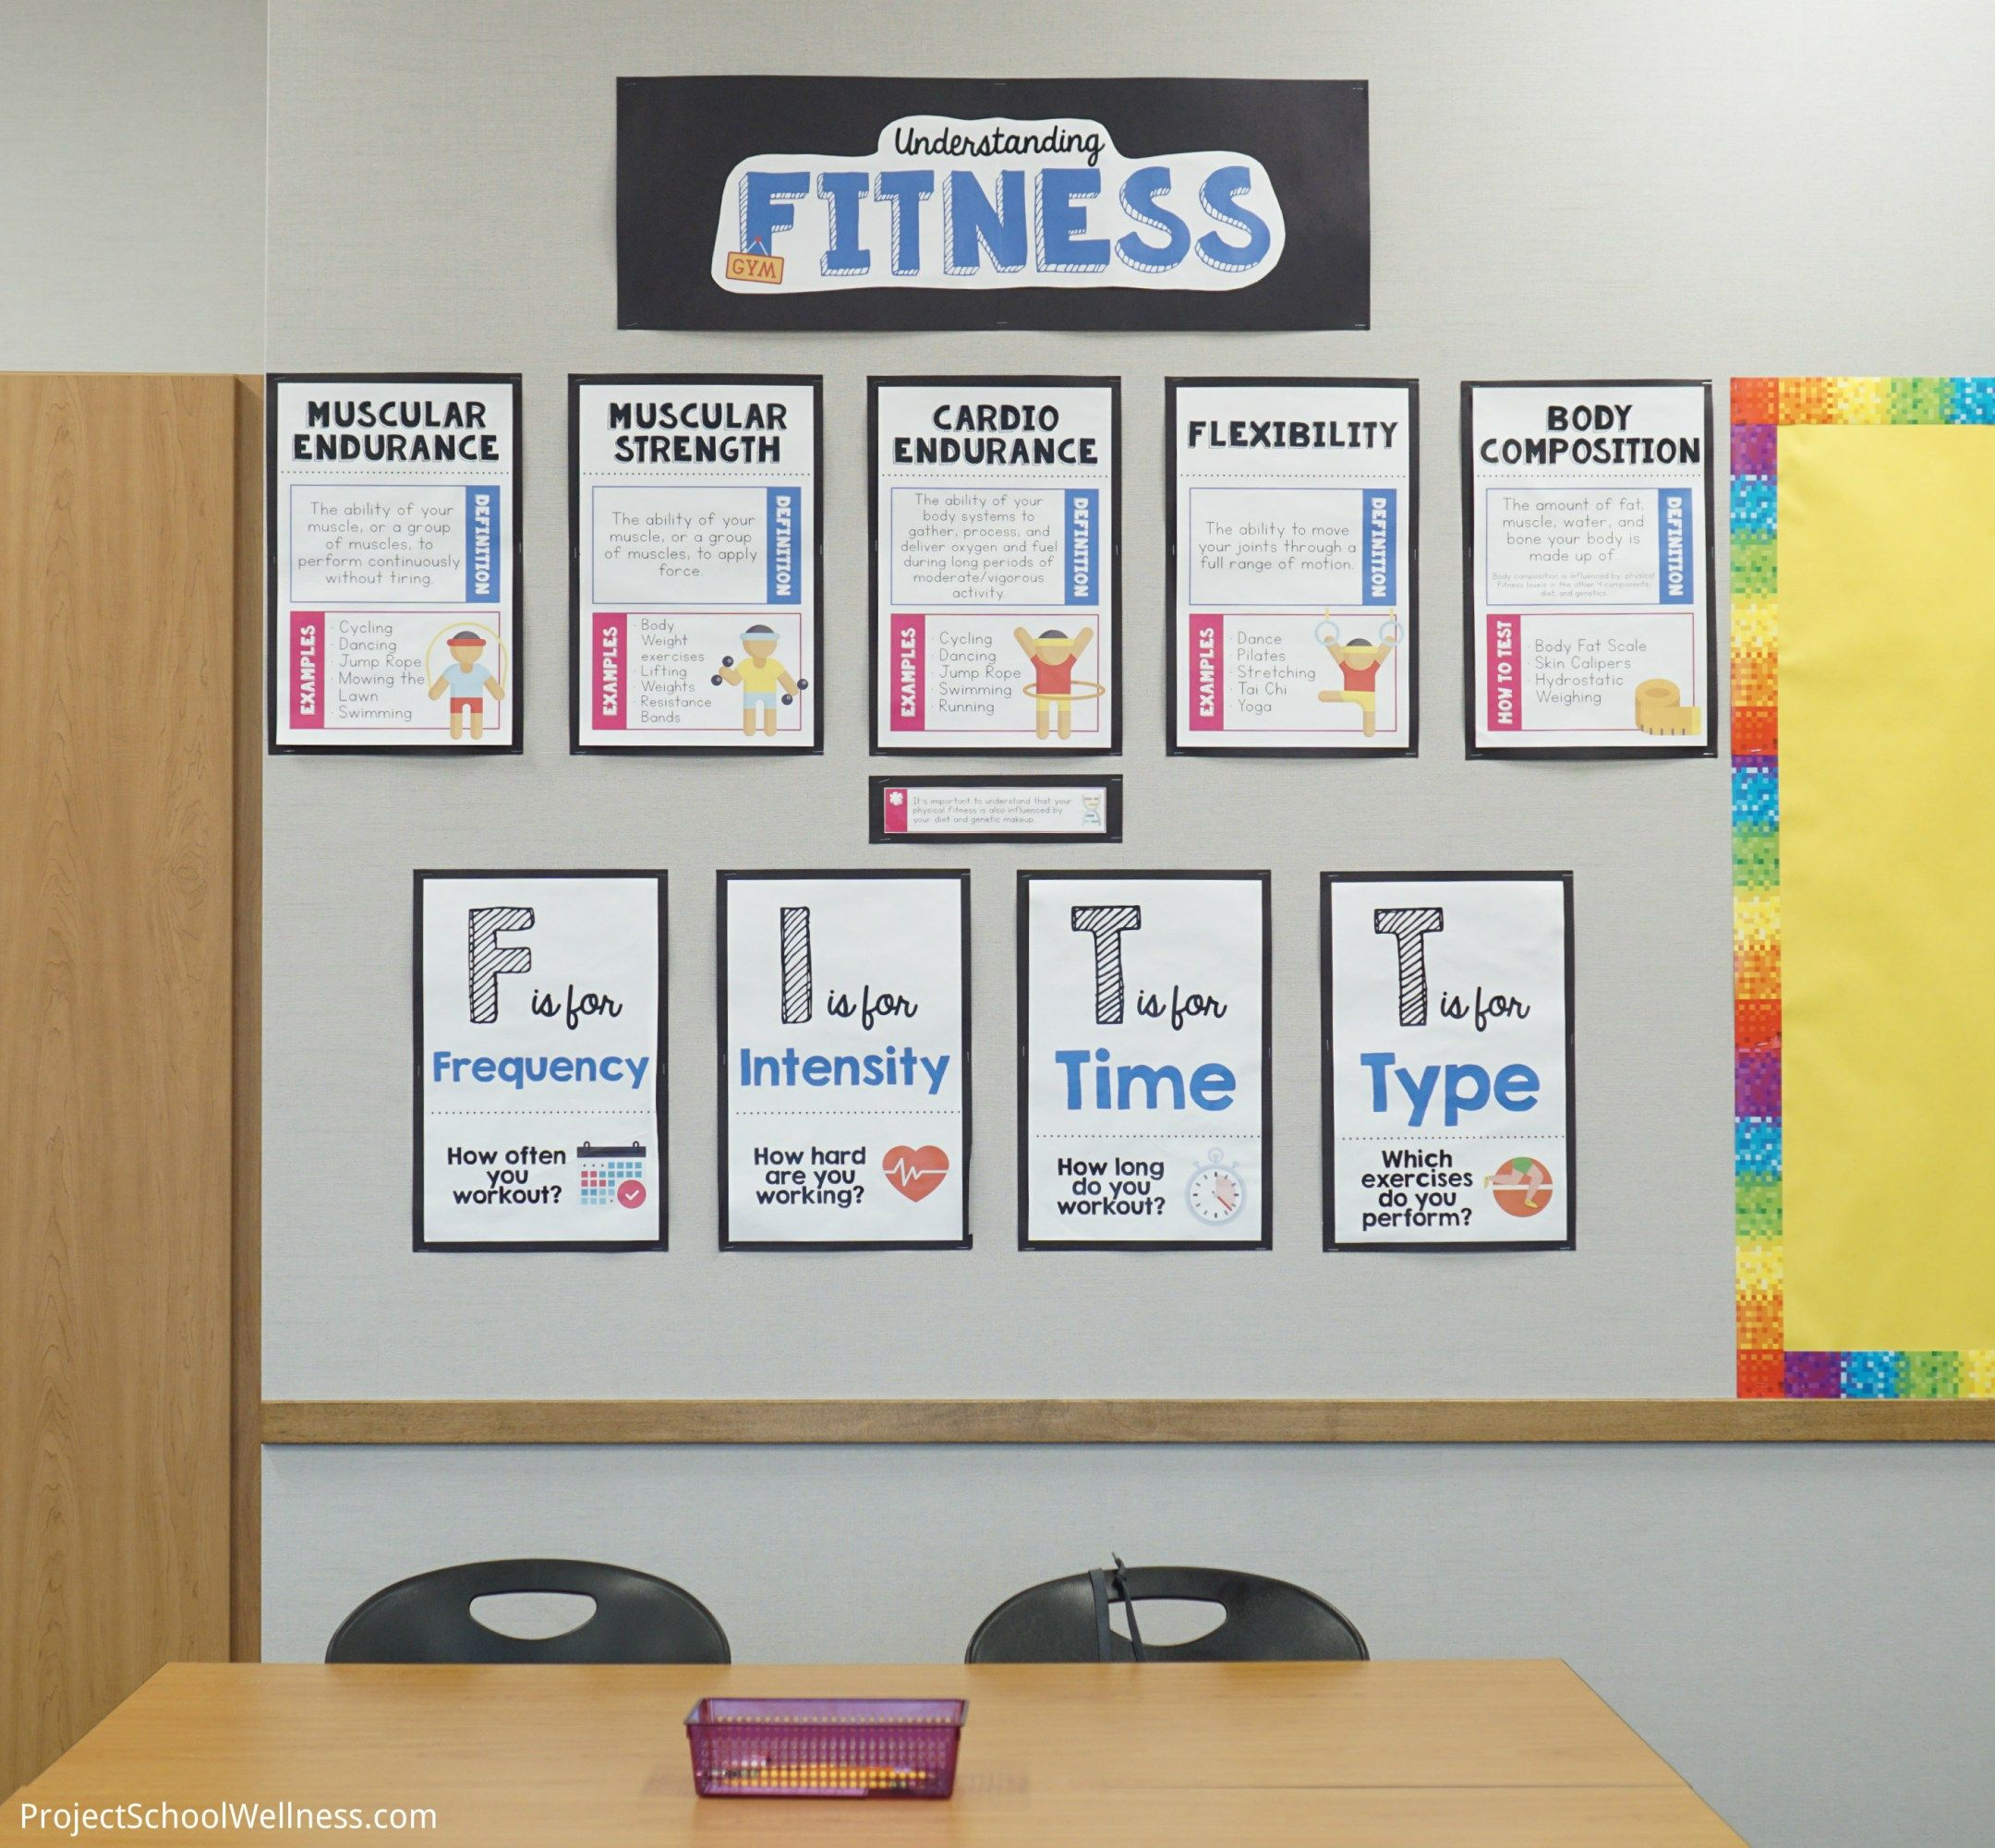 Fitt Principle Posters And Components Of Fitness Posters Perfect For Any Health And Pe Cl Room Project School Wellness